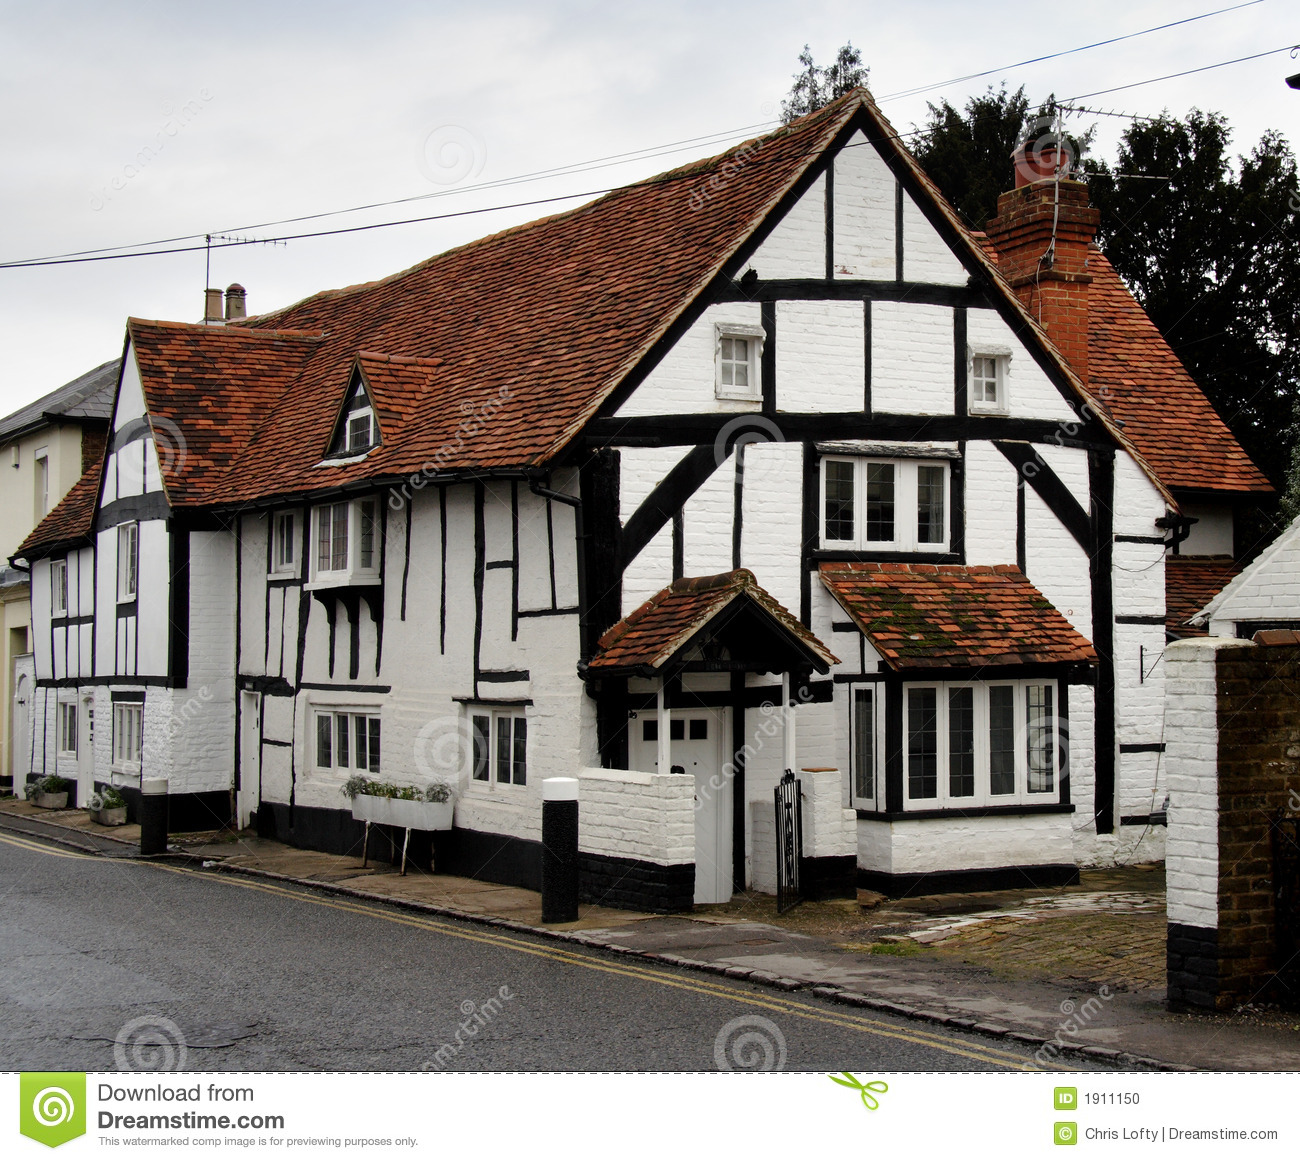 Maison anglaise de village photo stock image 1911150 - Photo maison anglaise ...